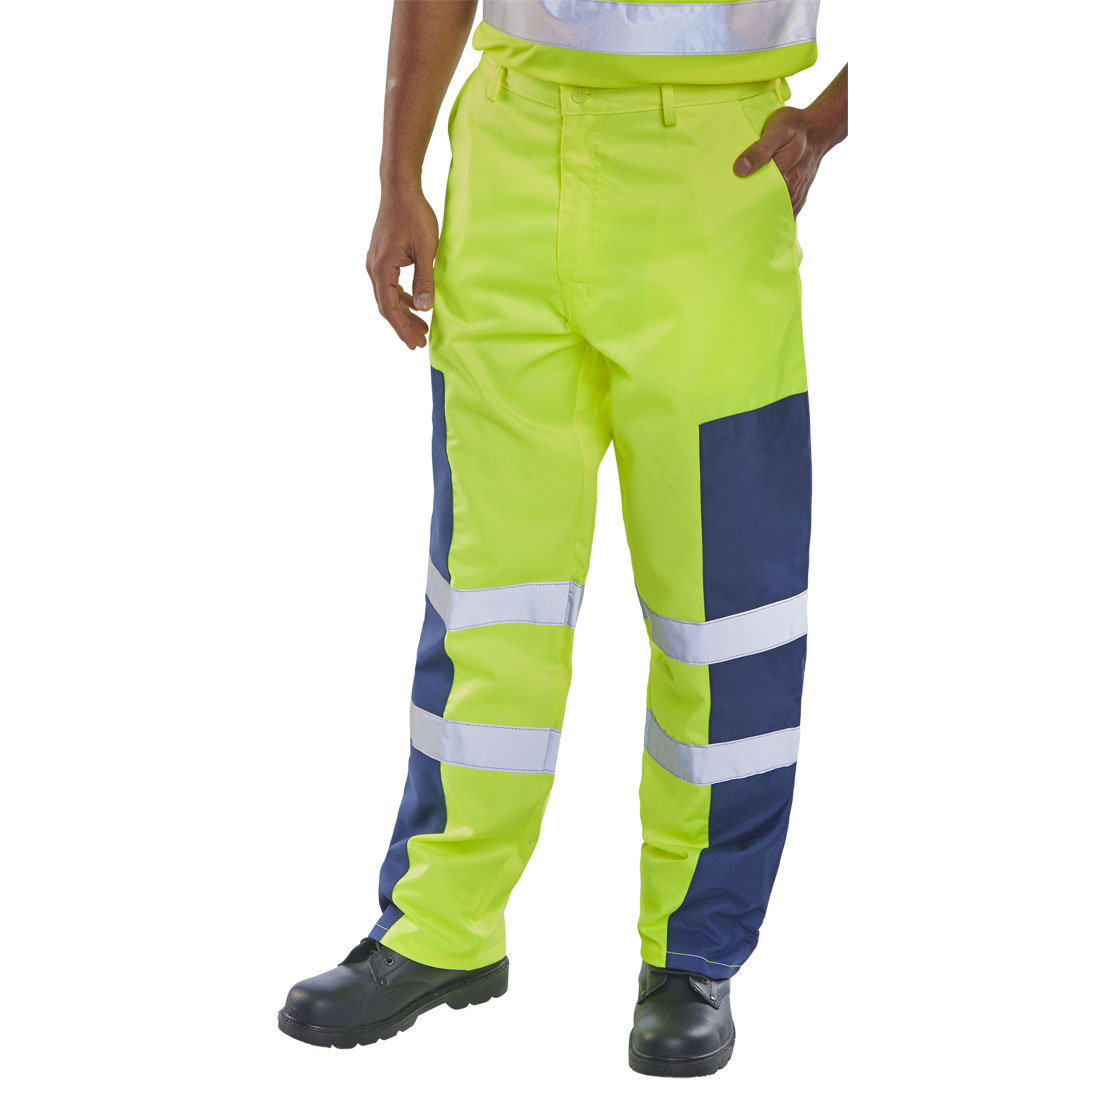 Click Workwear Trousers Hi-Vis Nylon Patch Yellow/Navy 40 Long Ref PCTSYNNP40T *Up to 3 Day Leadtime*